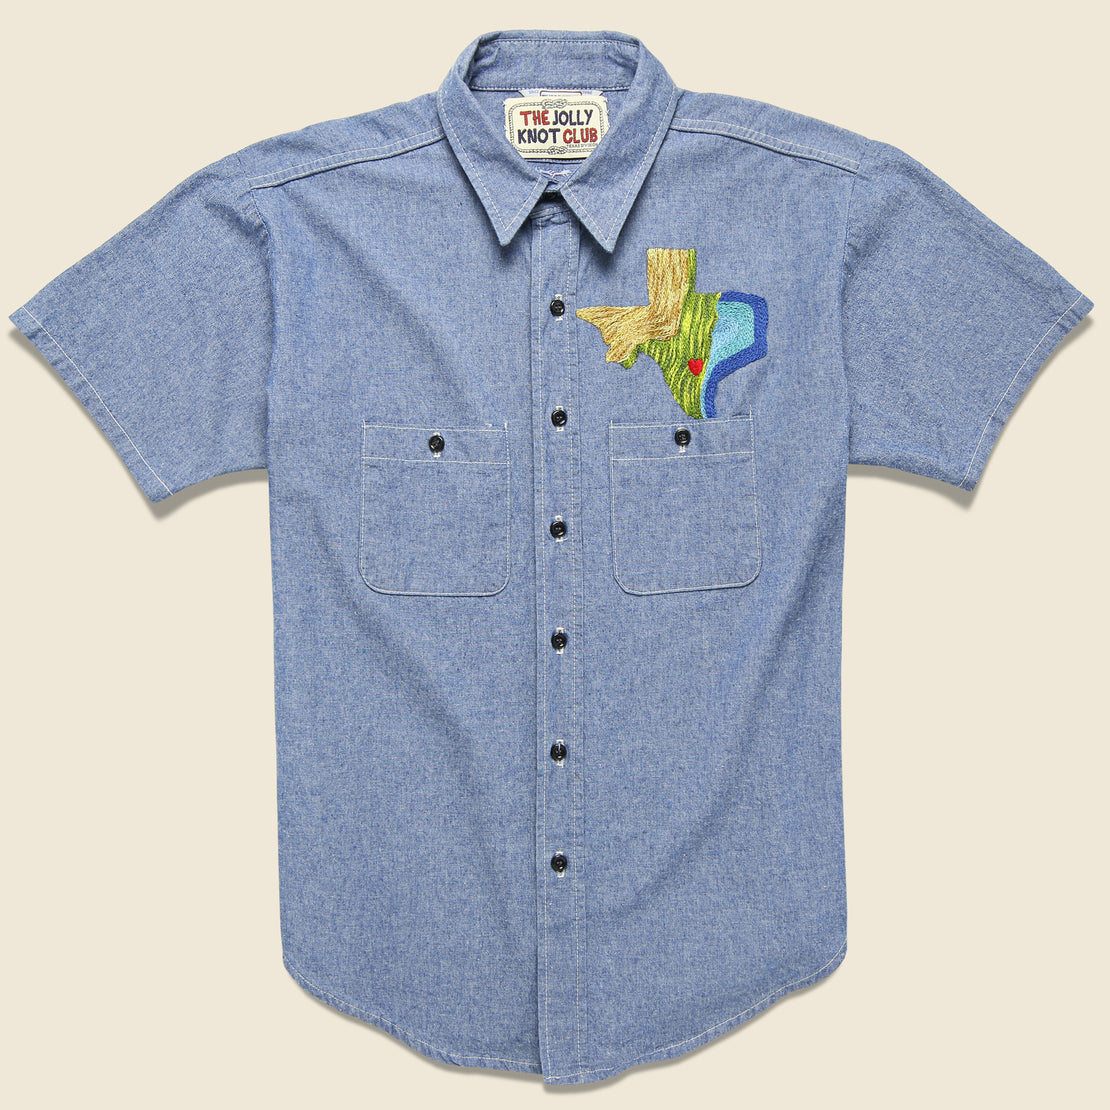 Embroidered Chambray Shirt - The Stars at Night